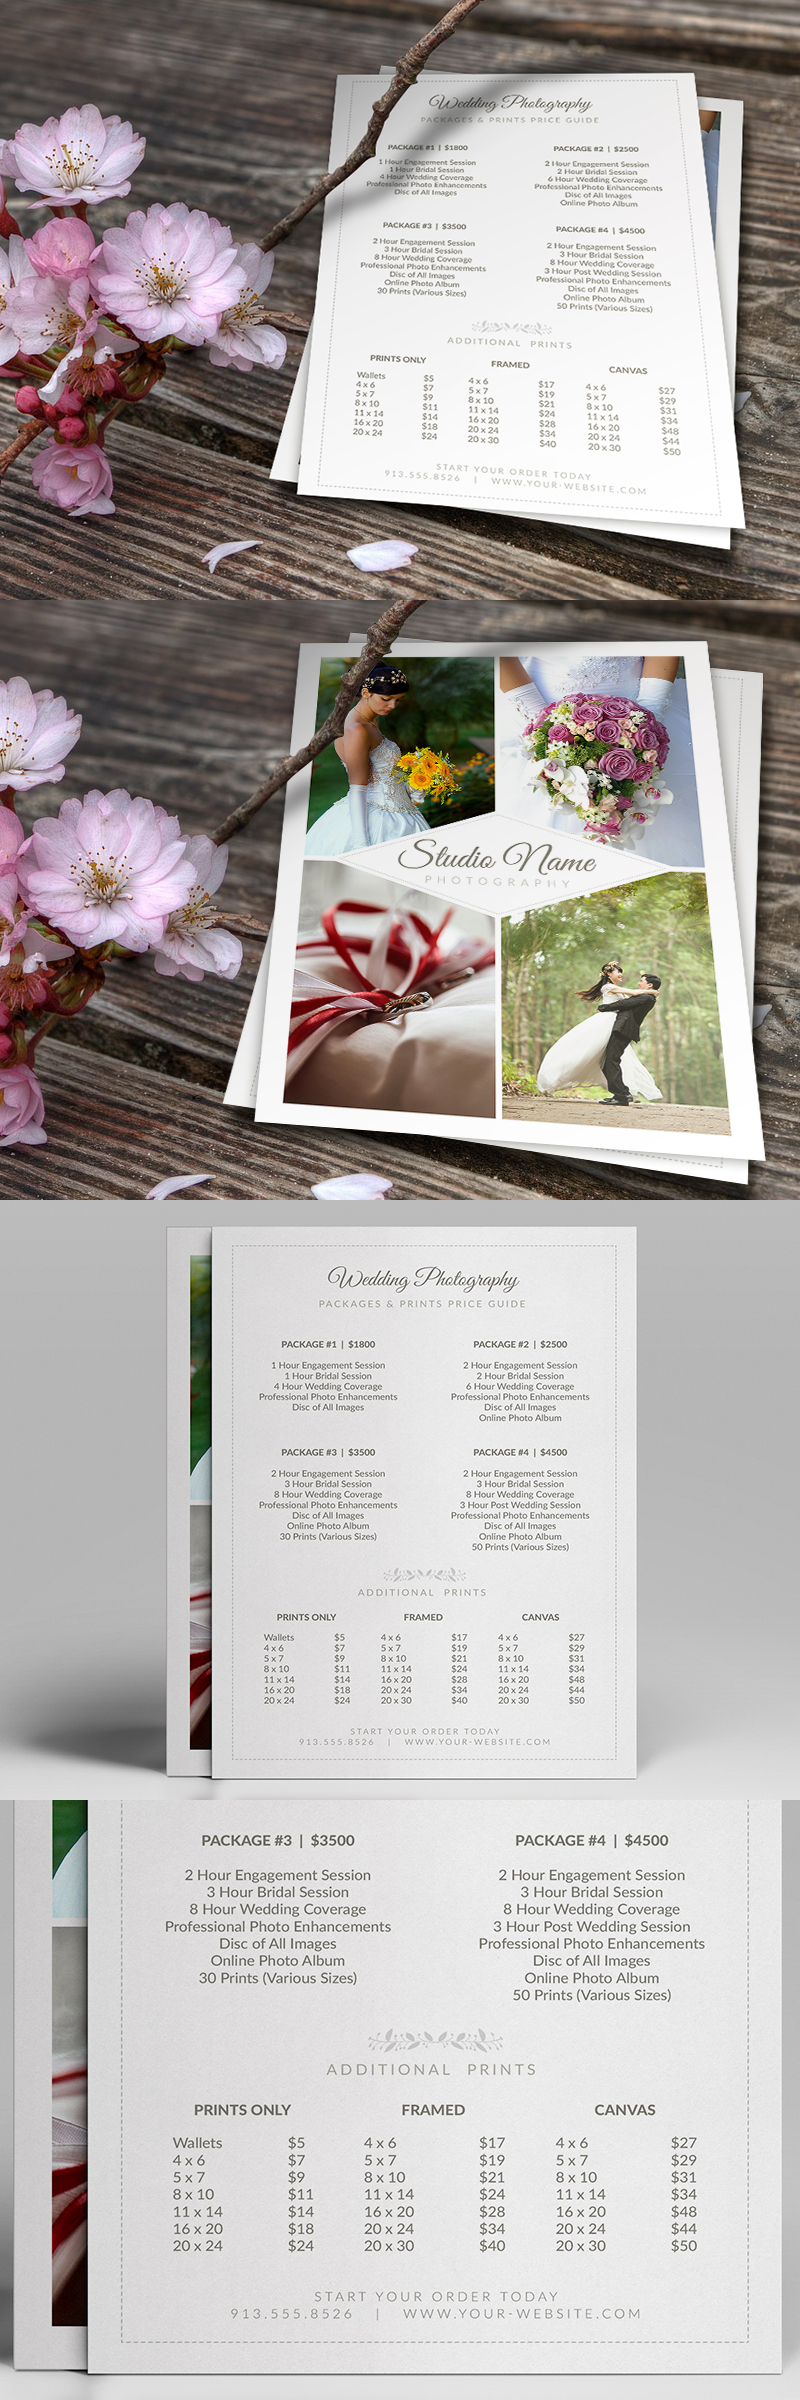 Wedding Photographer Pricing Guide / Price Sheet List 5×7 v2 – Photoshop PSD Template